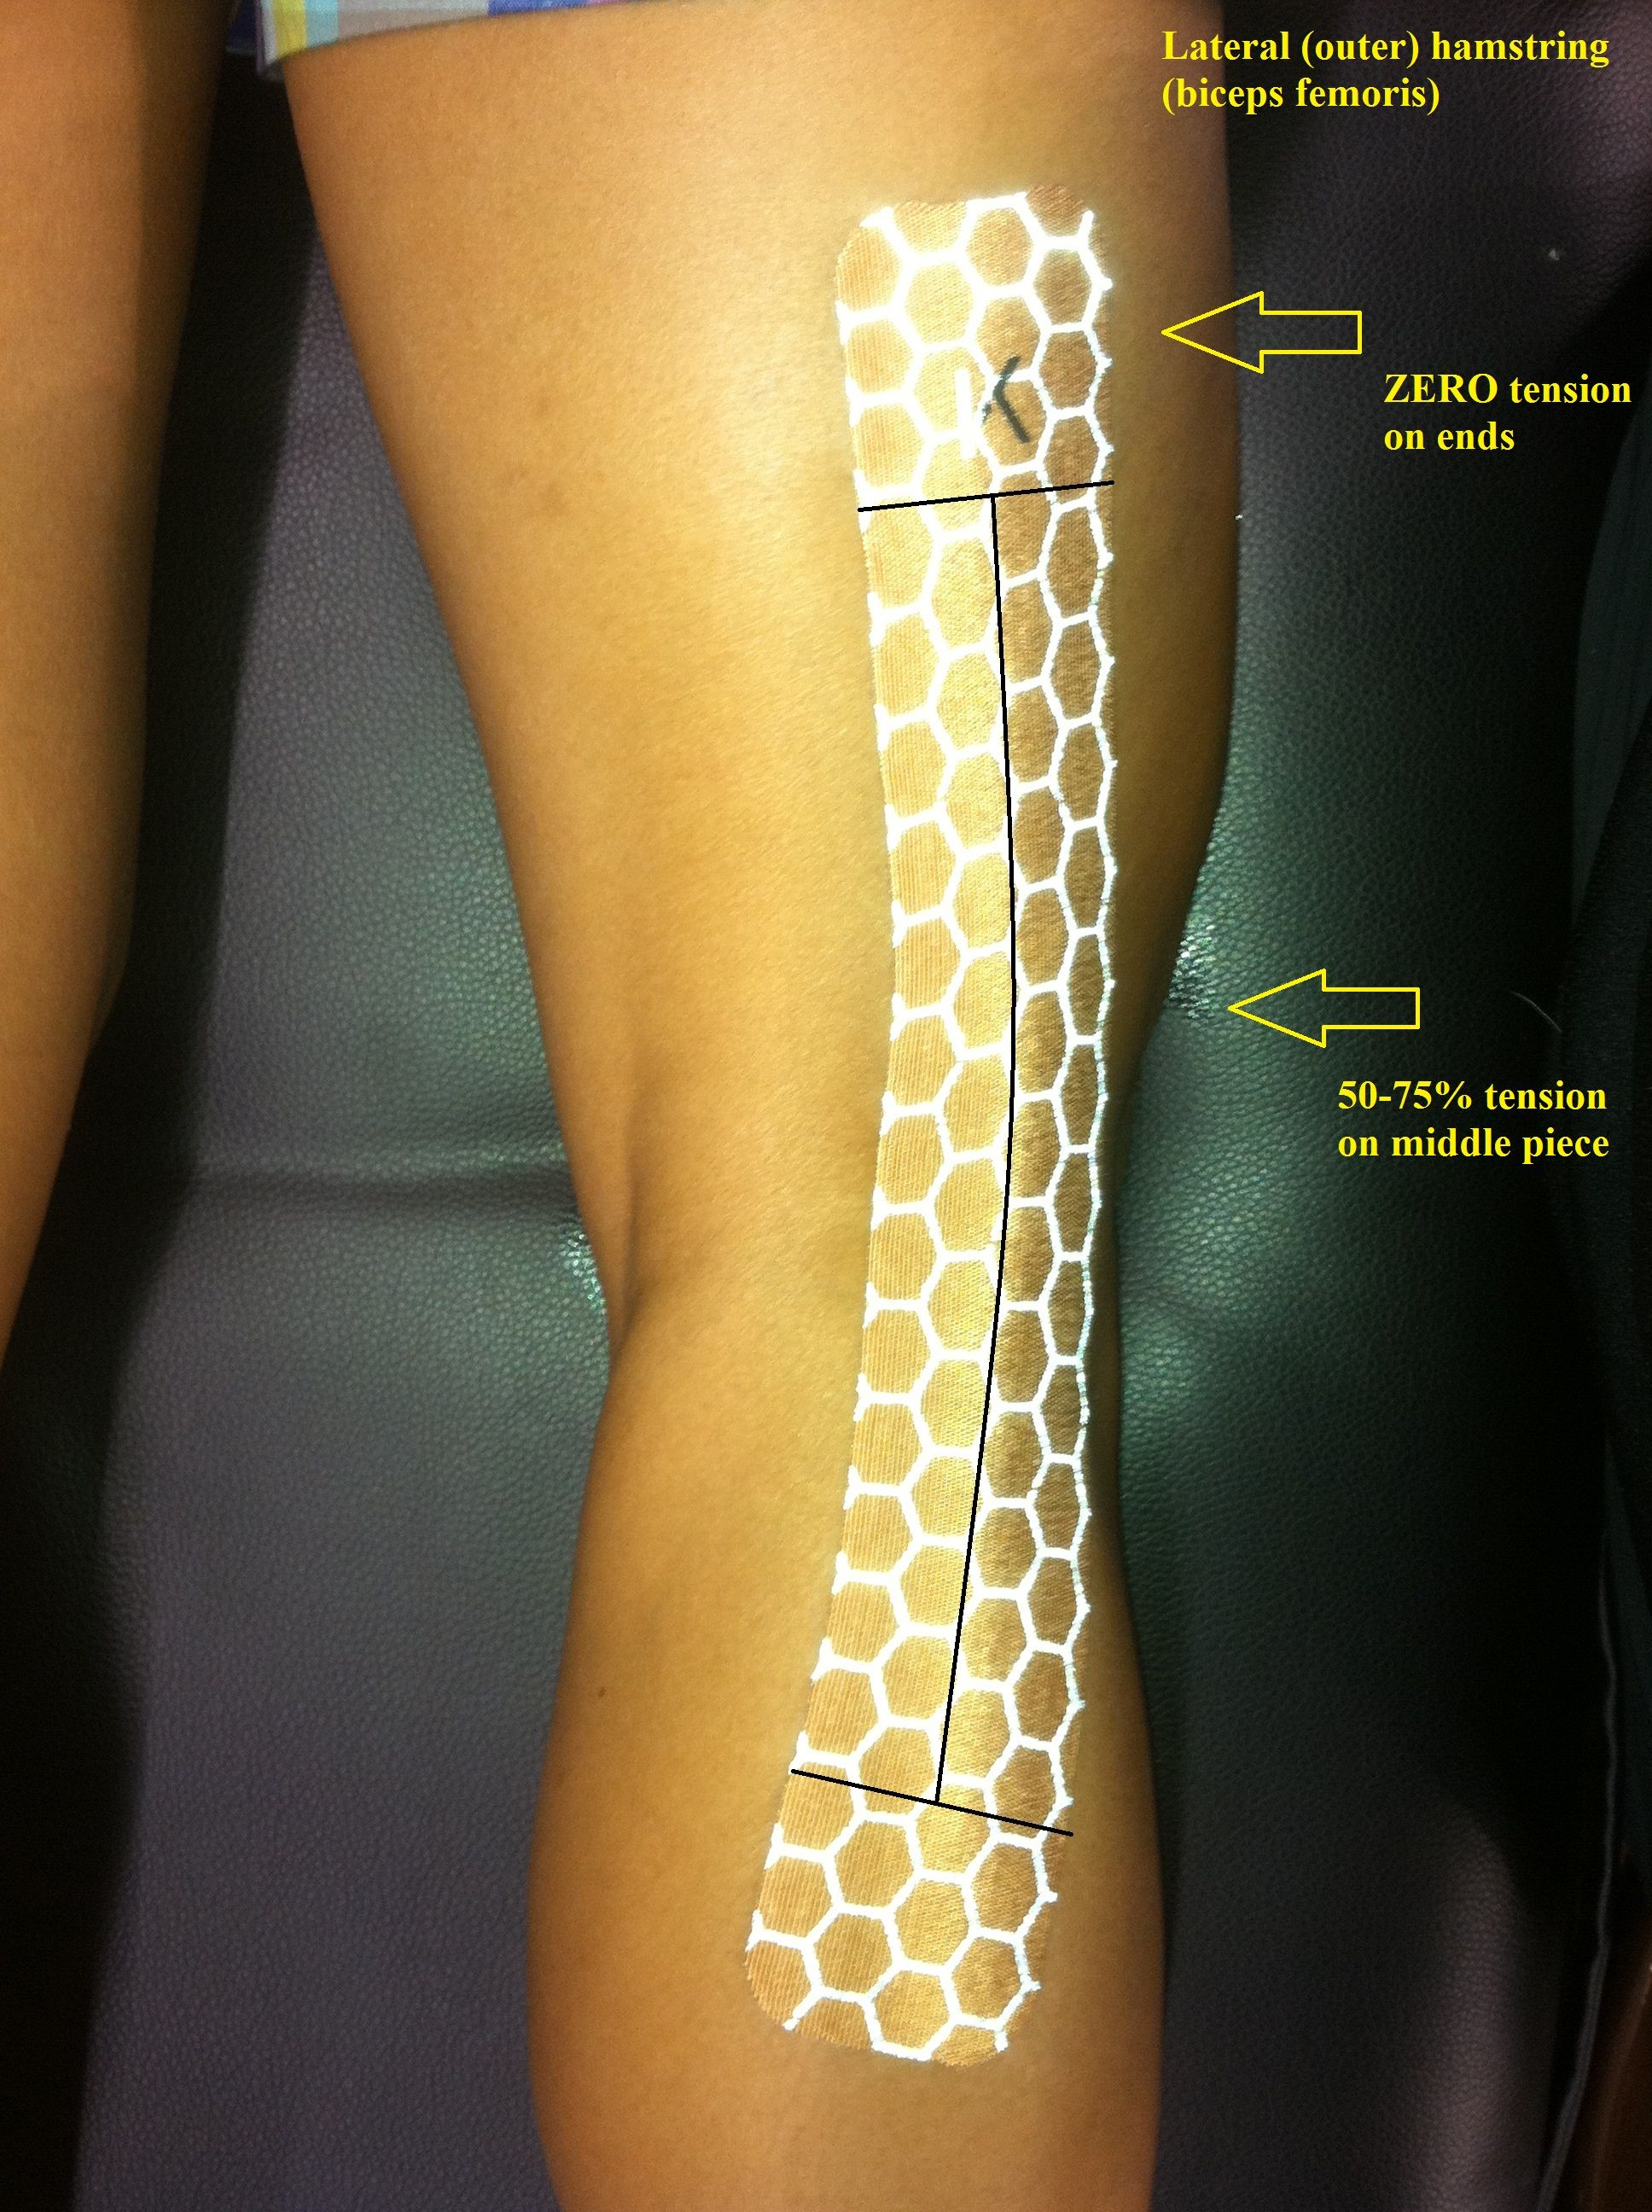 For medial meniscus move more toward the medial side of